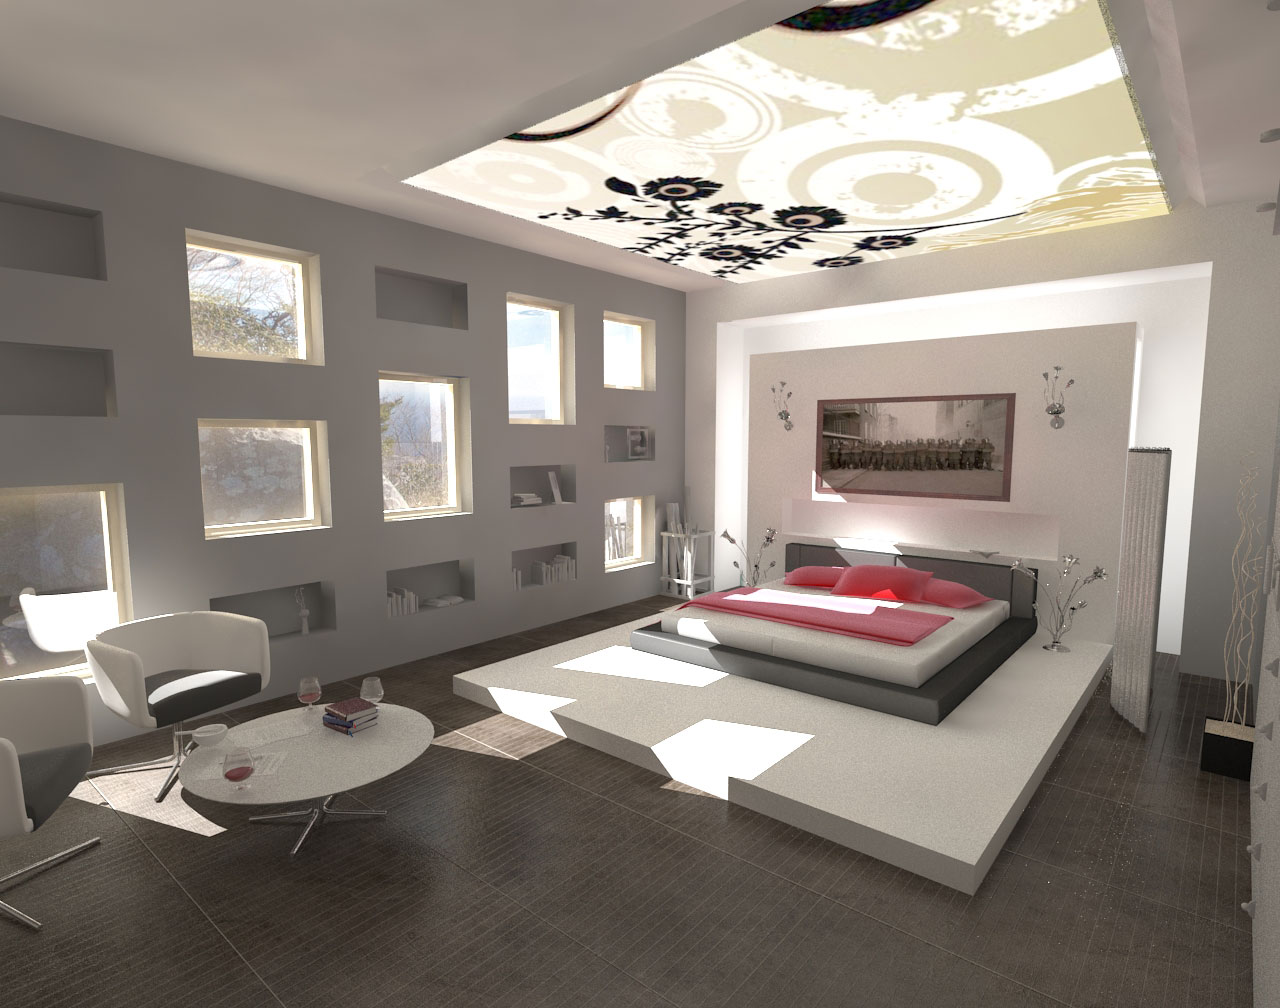 Decorations minimalist design modern bedroom interior for Minimalist design style